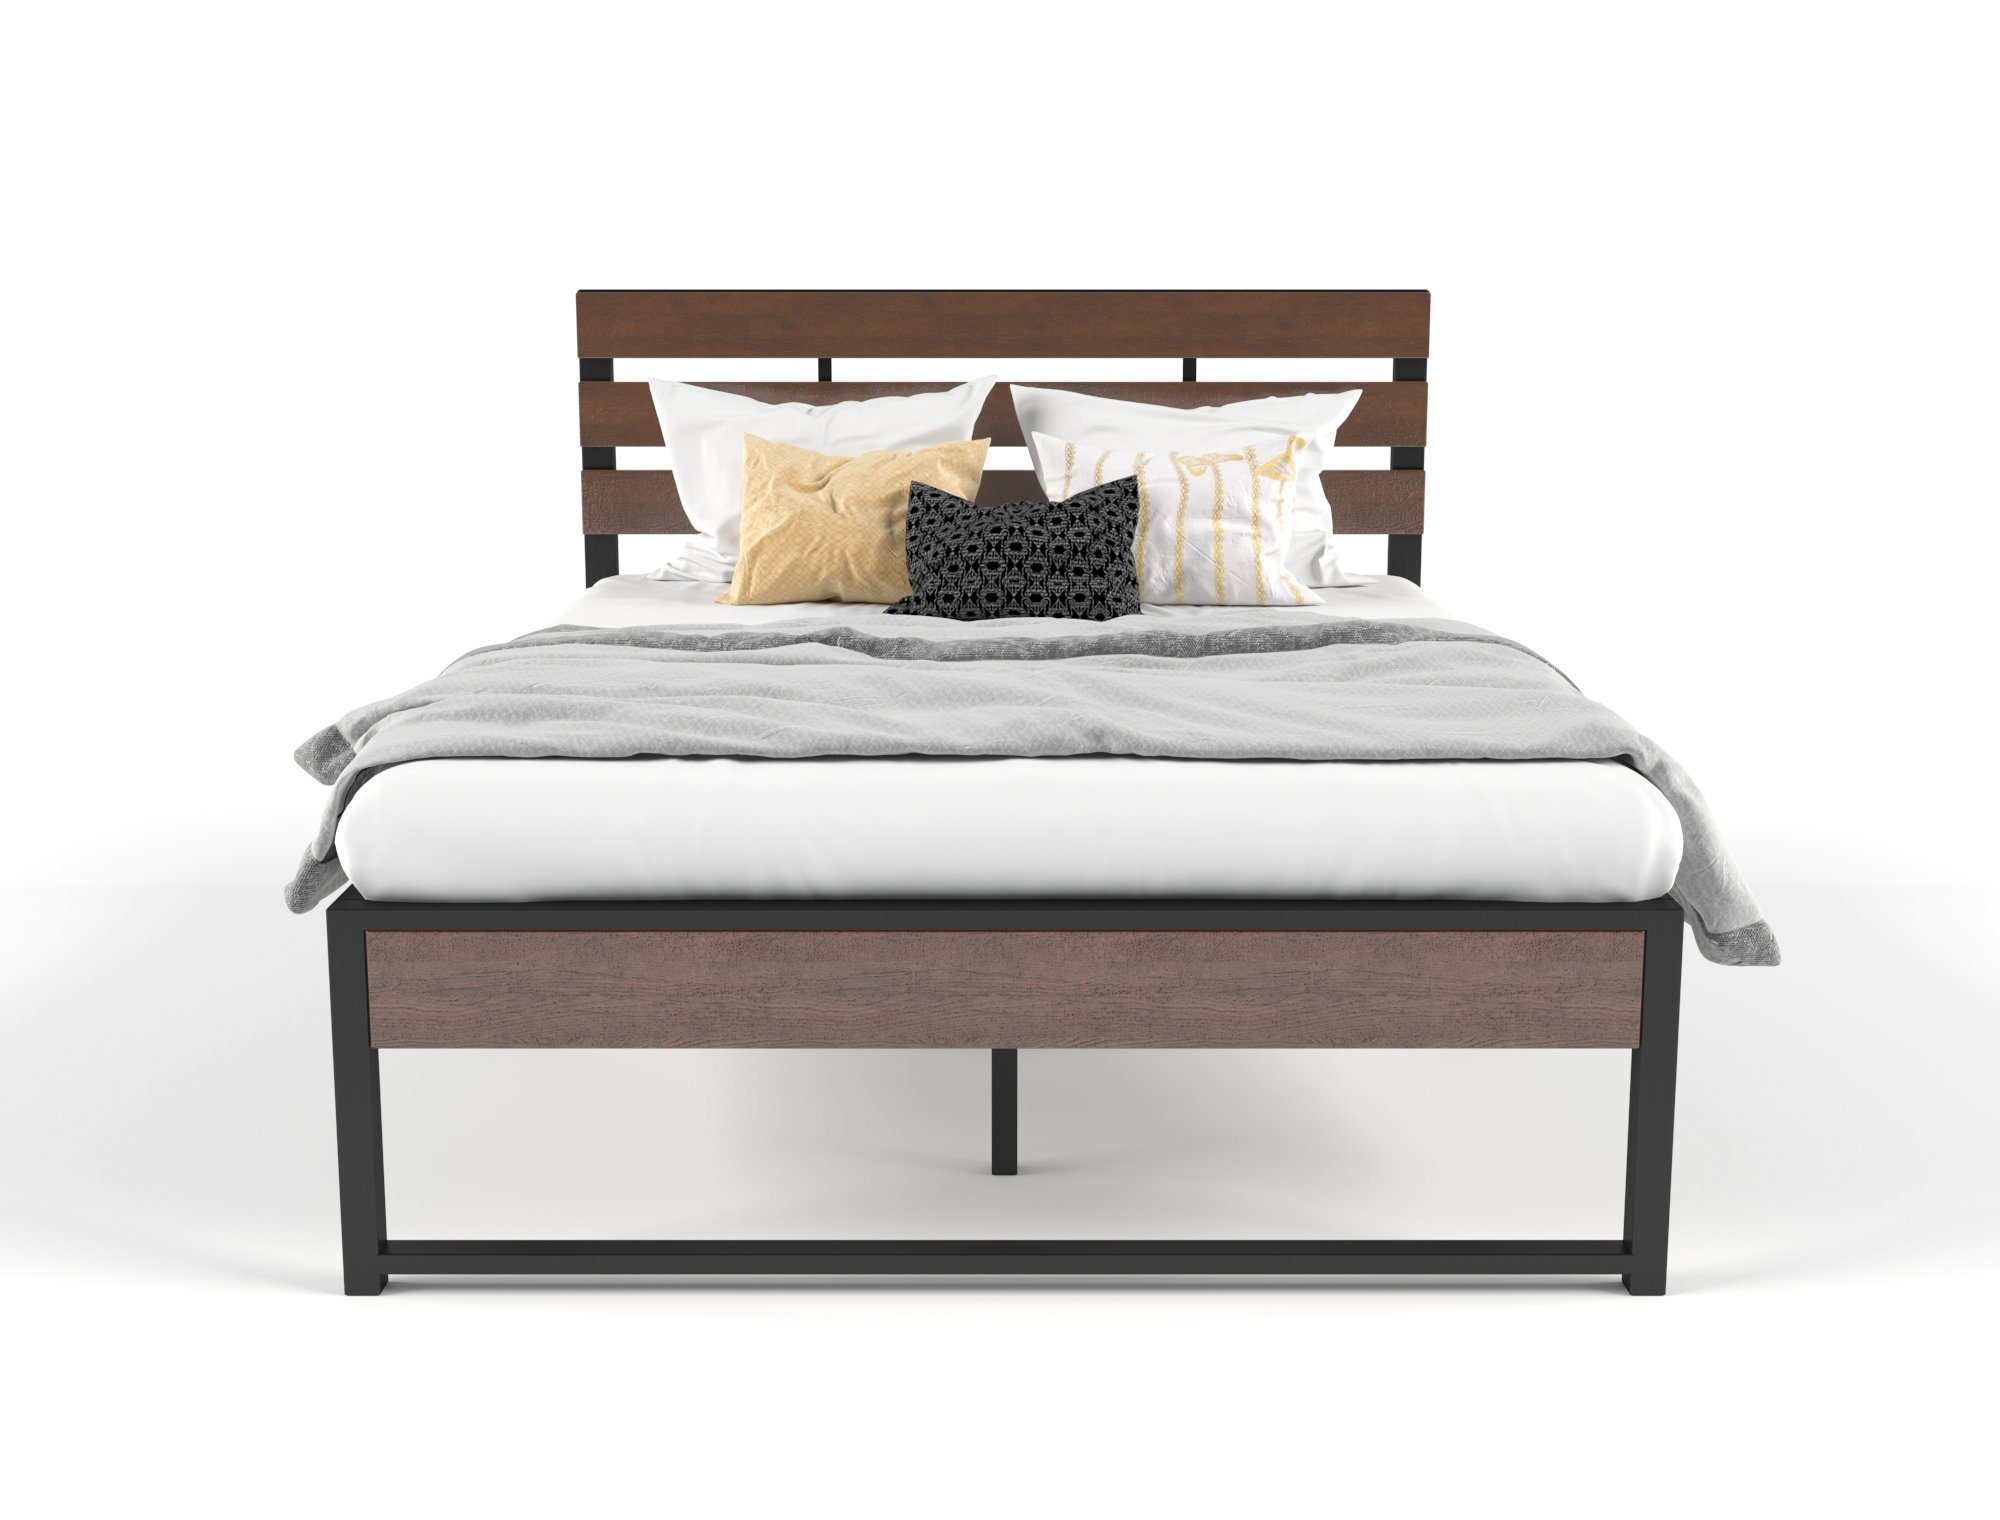 Ora Wooden and Metal Bed Frame Queen